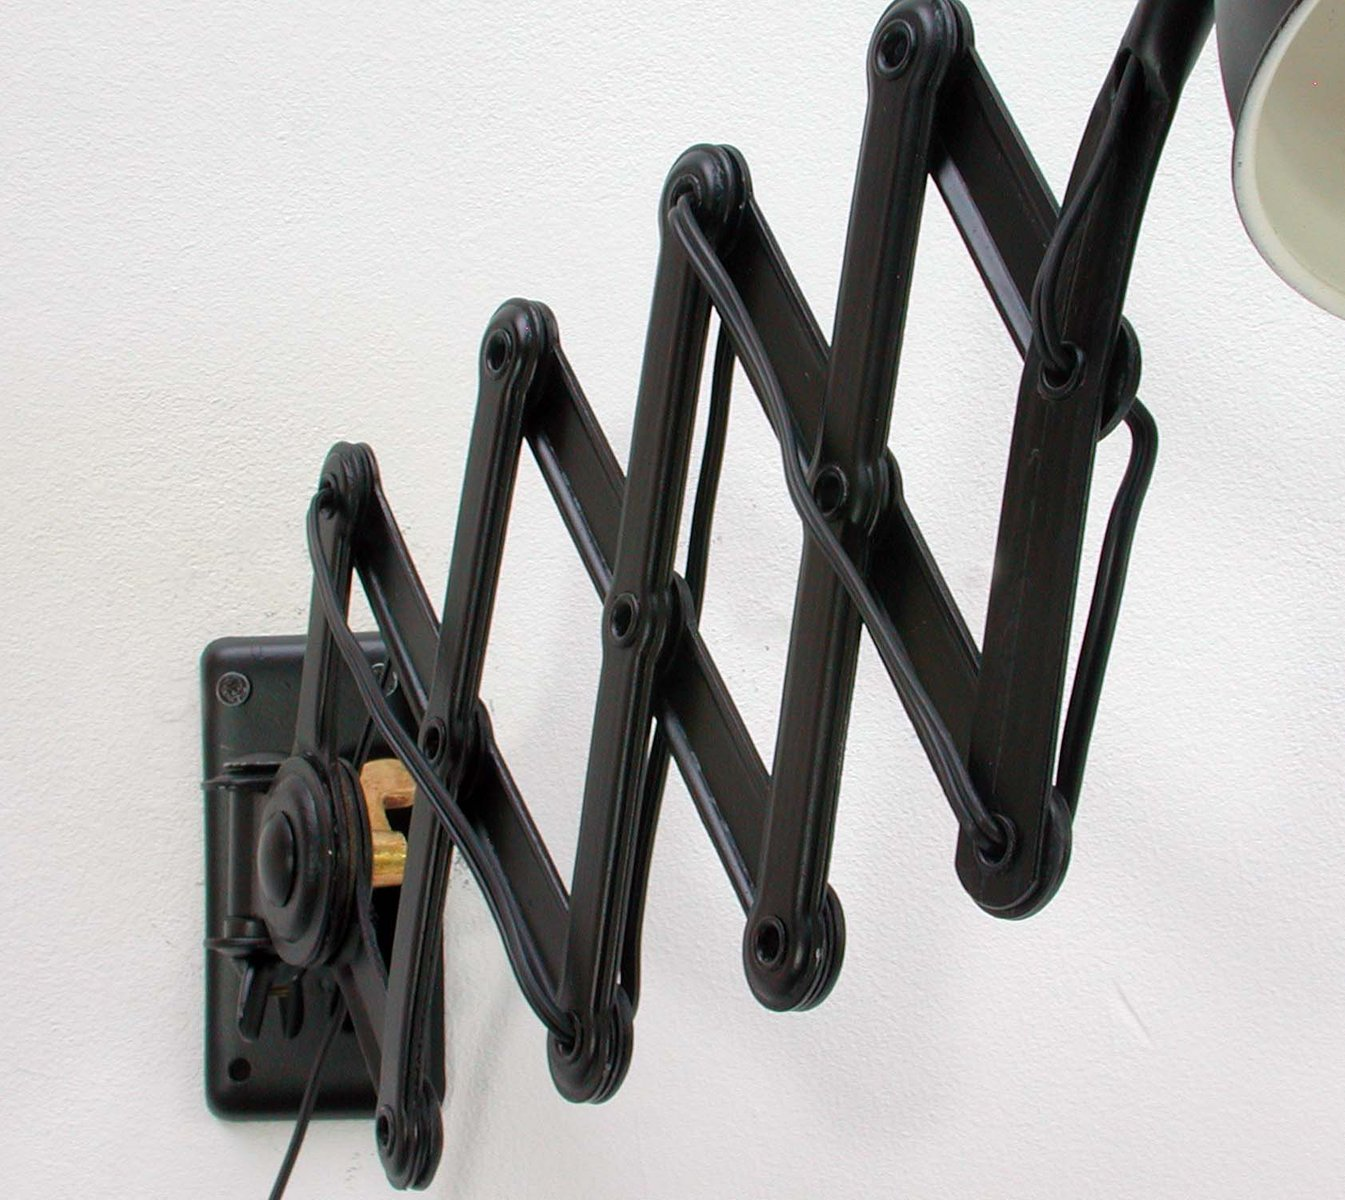 Black 6718 Scissor Lamp By Christian Dell For Kaiser Idell